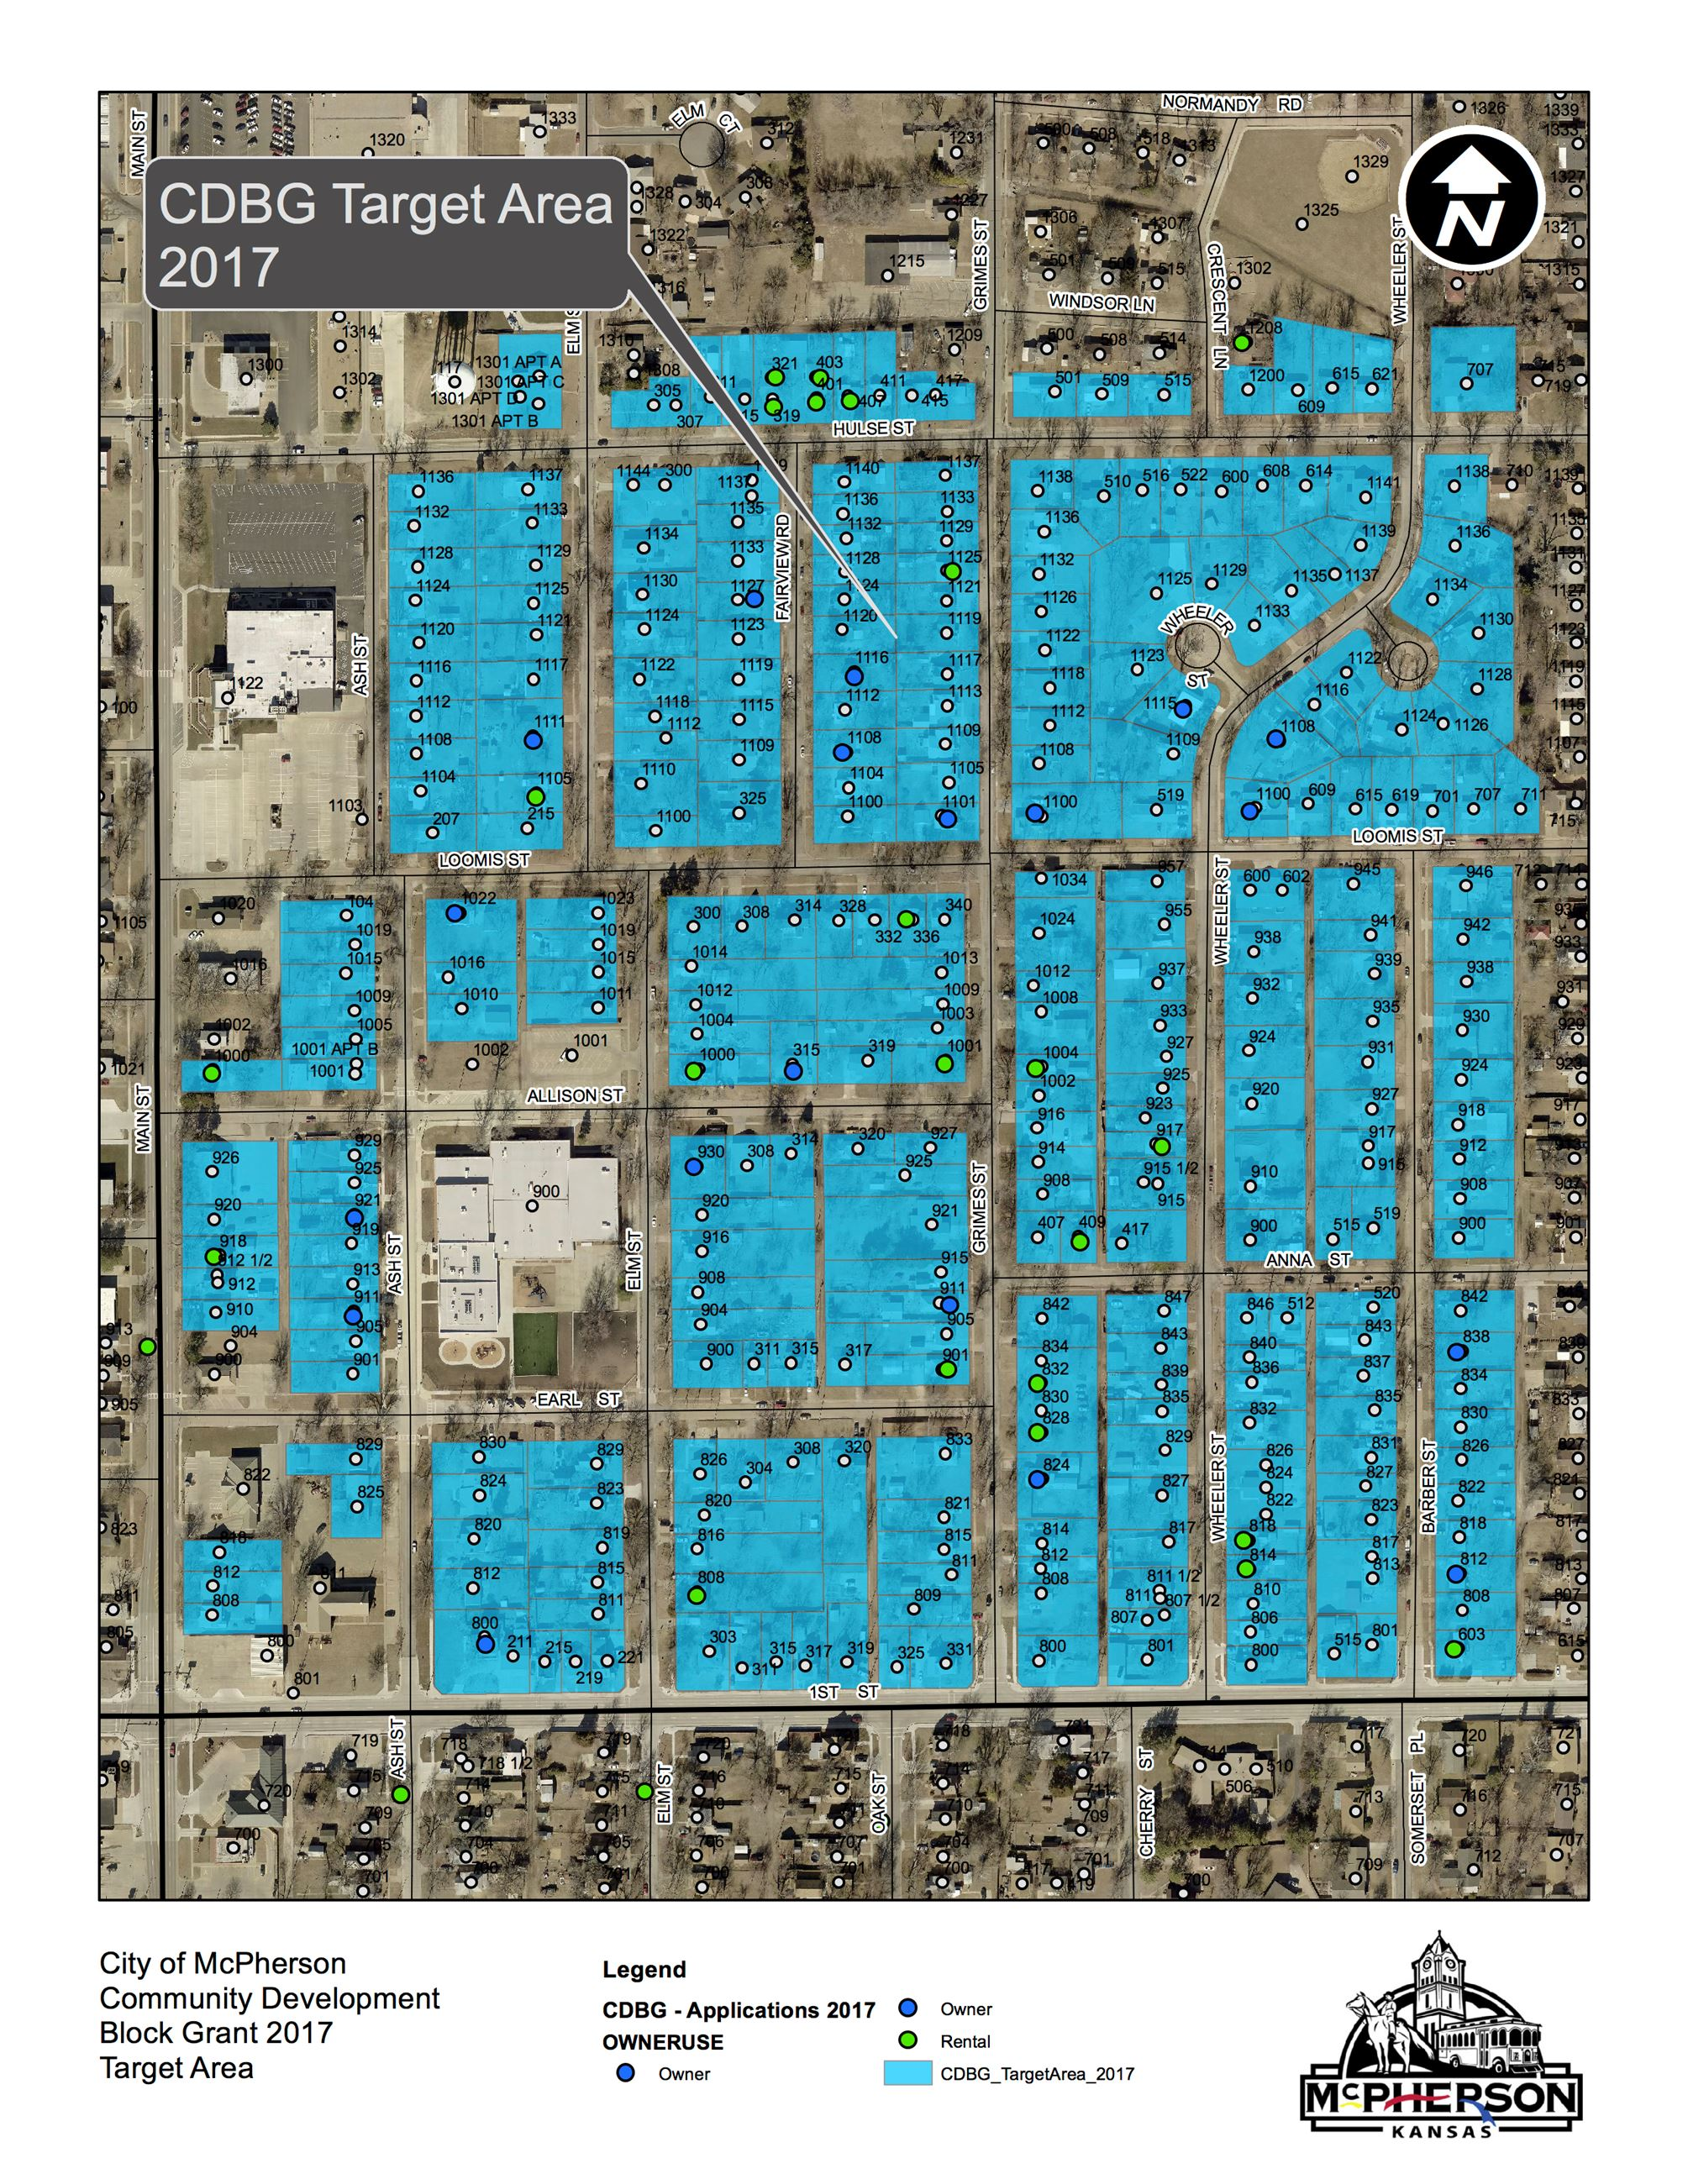 Neighborhood map designated target area for grant project